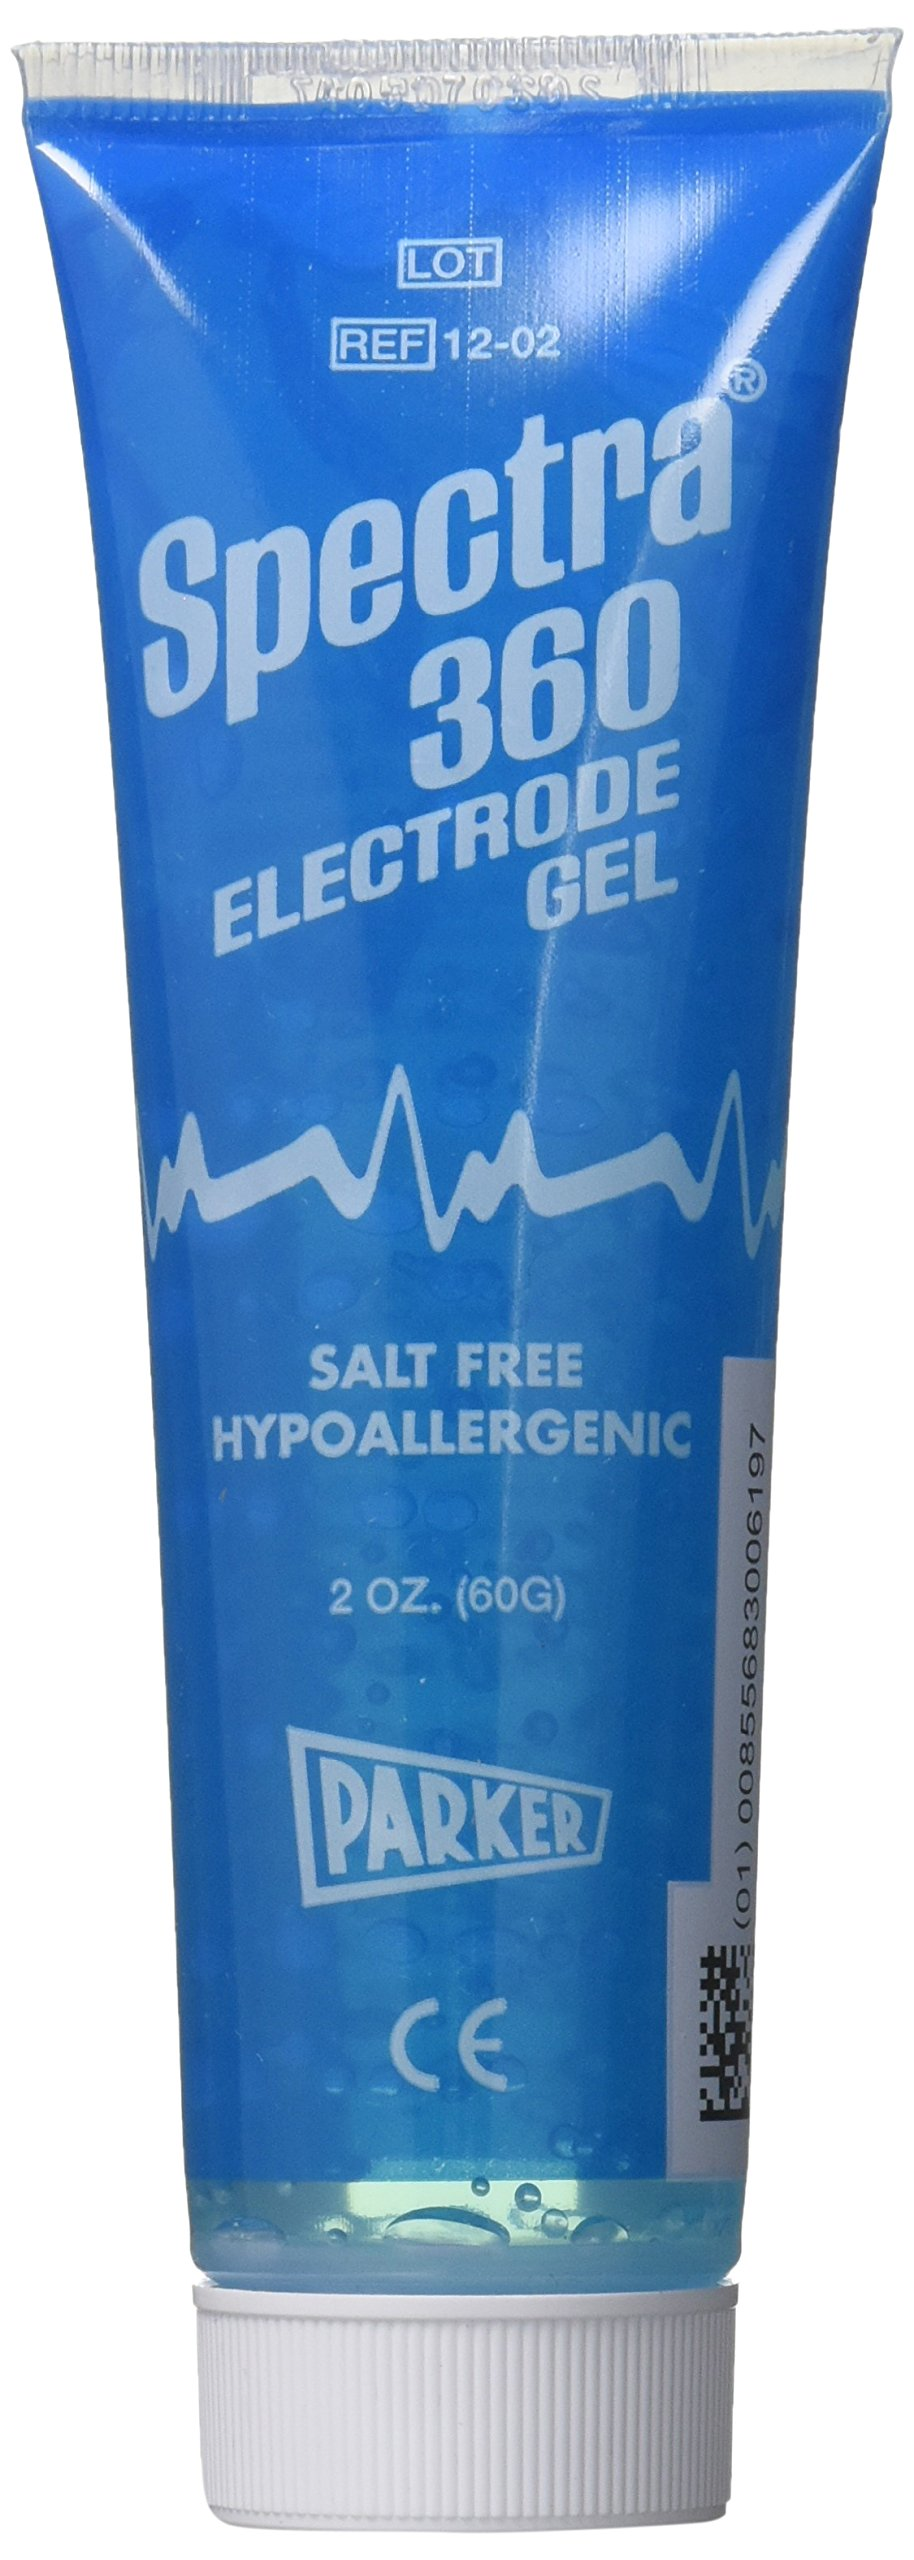 Spectra 360 Electrode Gel - Parker Laboratories - 60g (2oz) Tube - (Pack of 3)